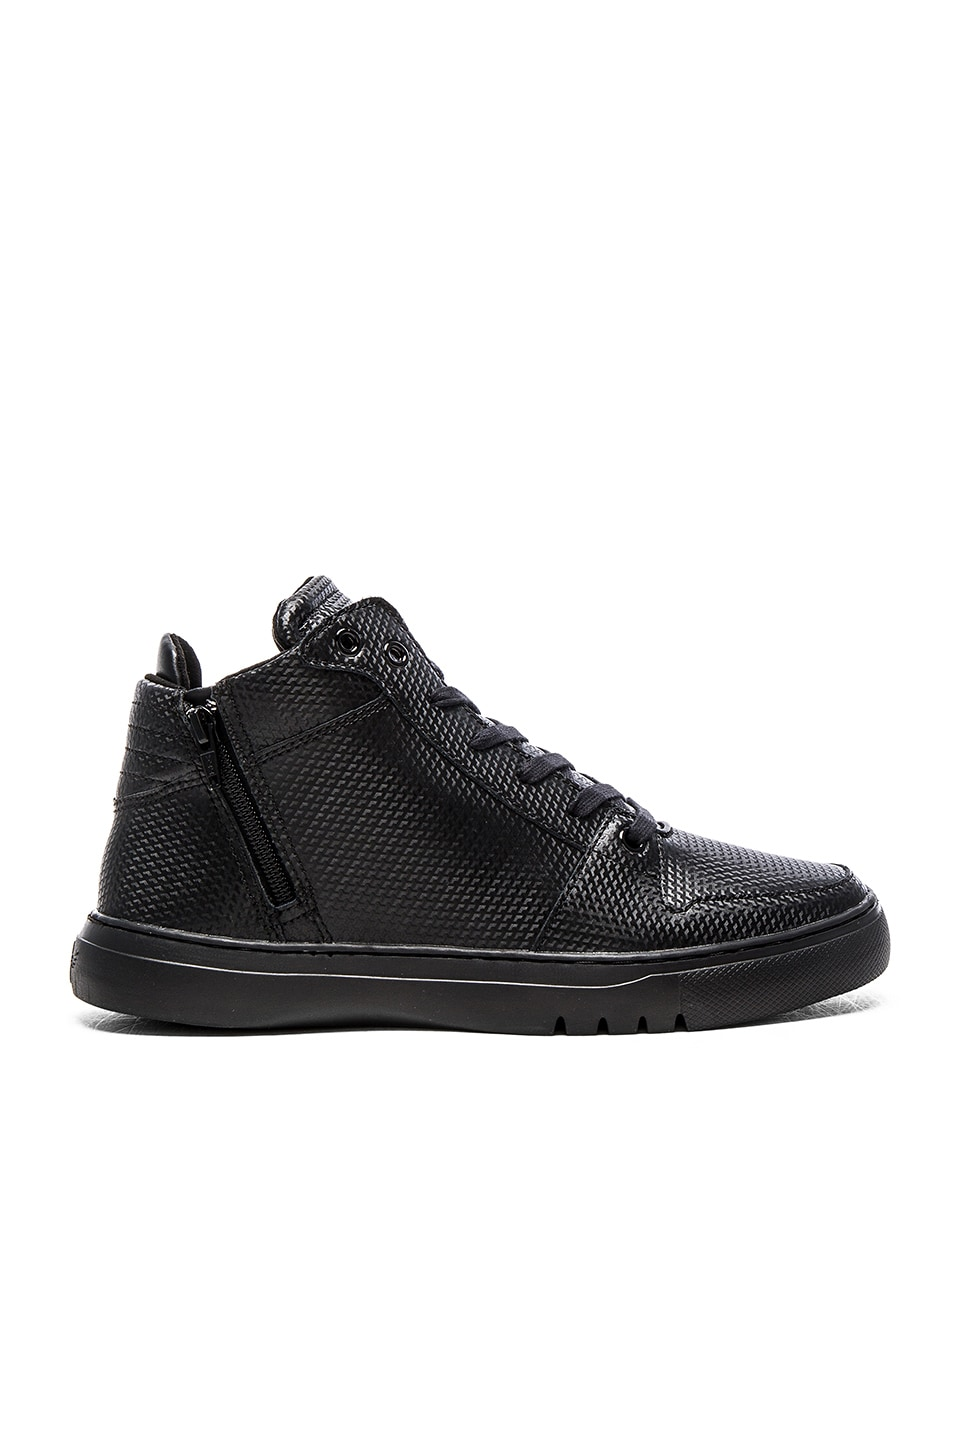 Creative Recreation Adonis Mid in Black Black